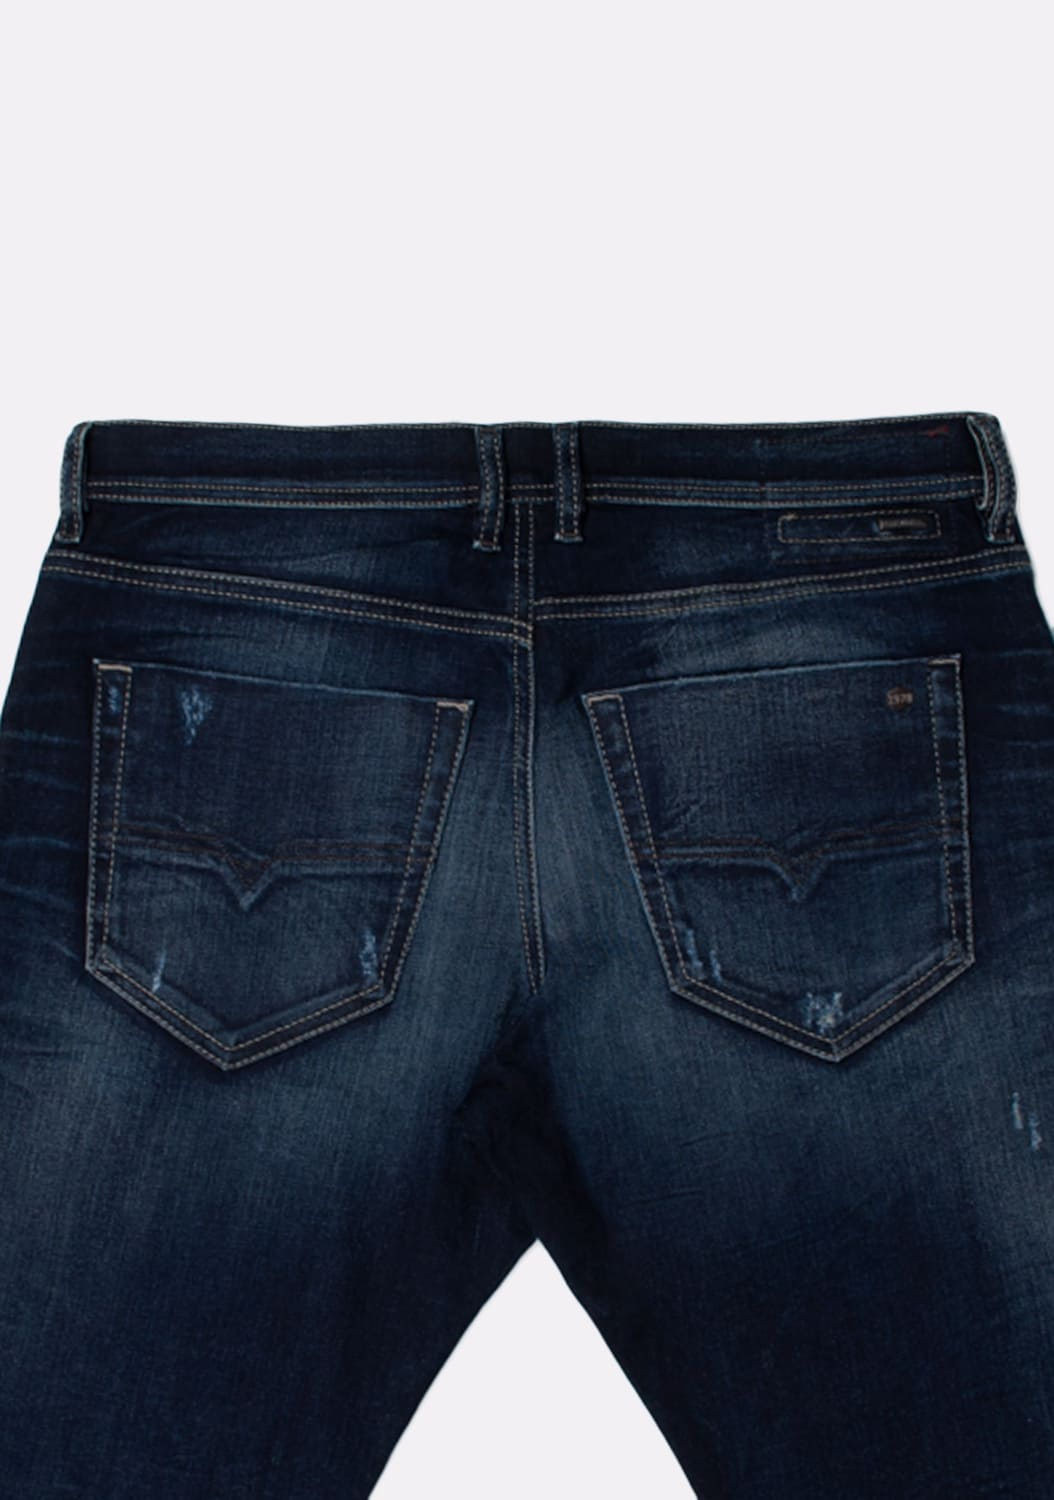 Diesel-Tepphar-0844T-Stretch-Slim-Carrot-dzinsai-dydis 34-30 (6)